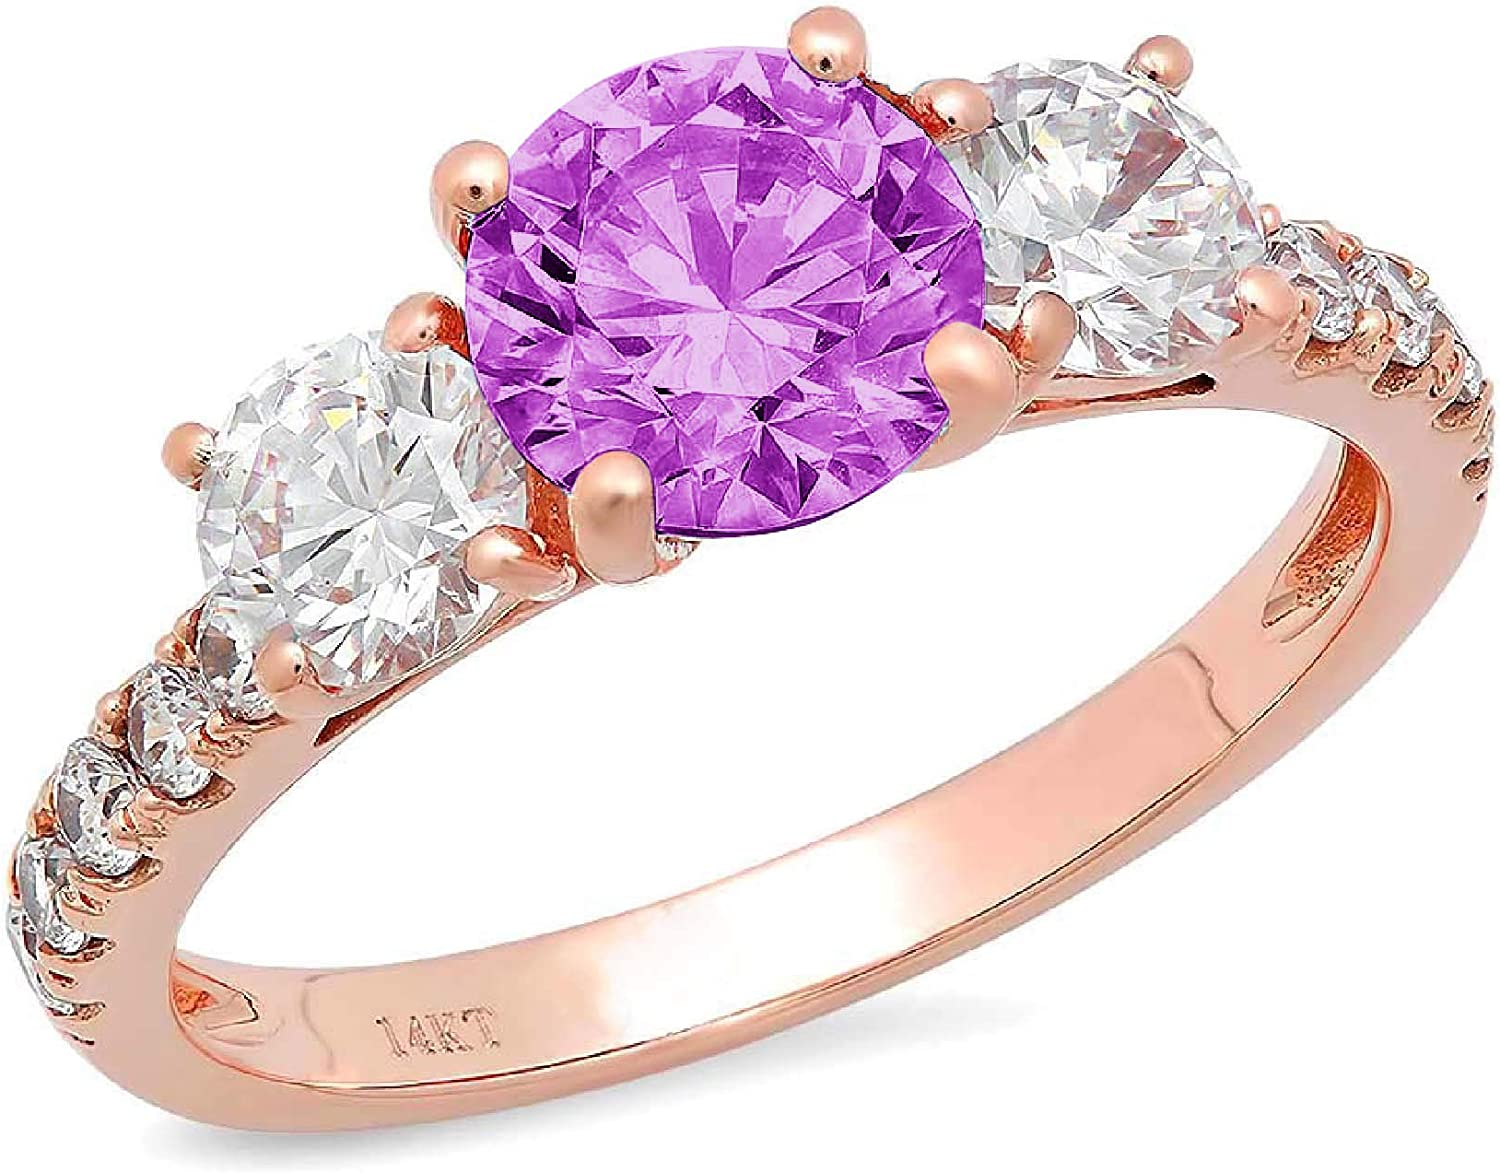 2ct Brilliant Round Cut Solitaire 3 stone With Accent Flawless Simulated Purple Alexandrite Ideal Engagement Promise Anniversary Bridal Wedding Designer Ring 14k Rose Gold